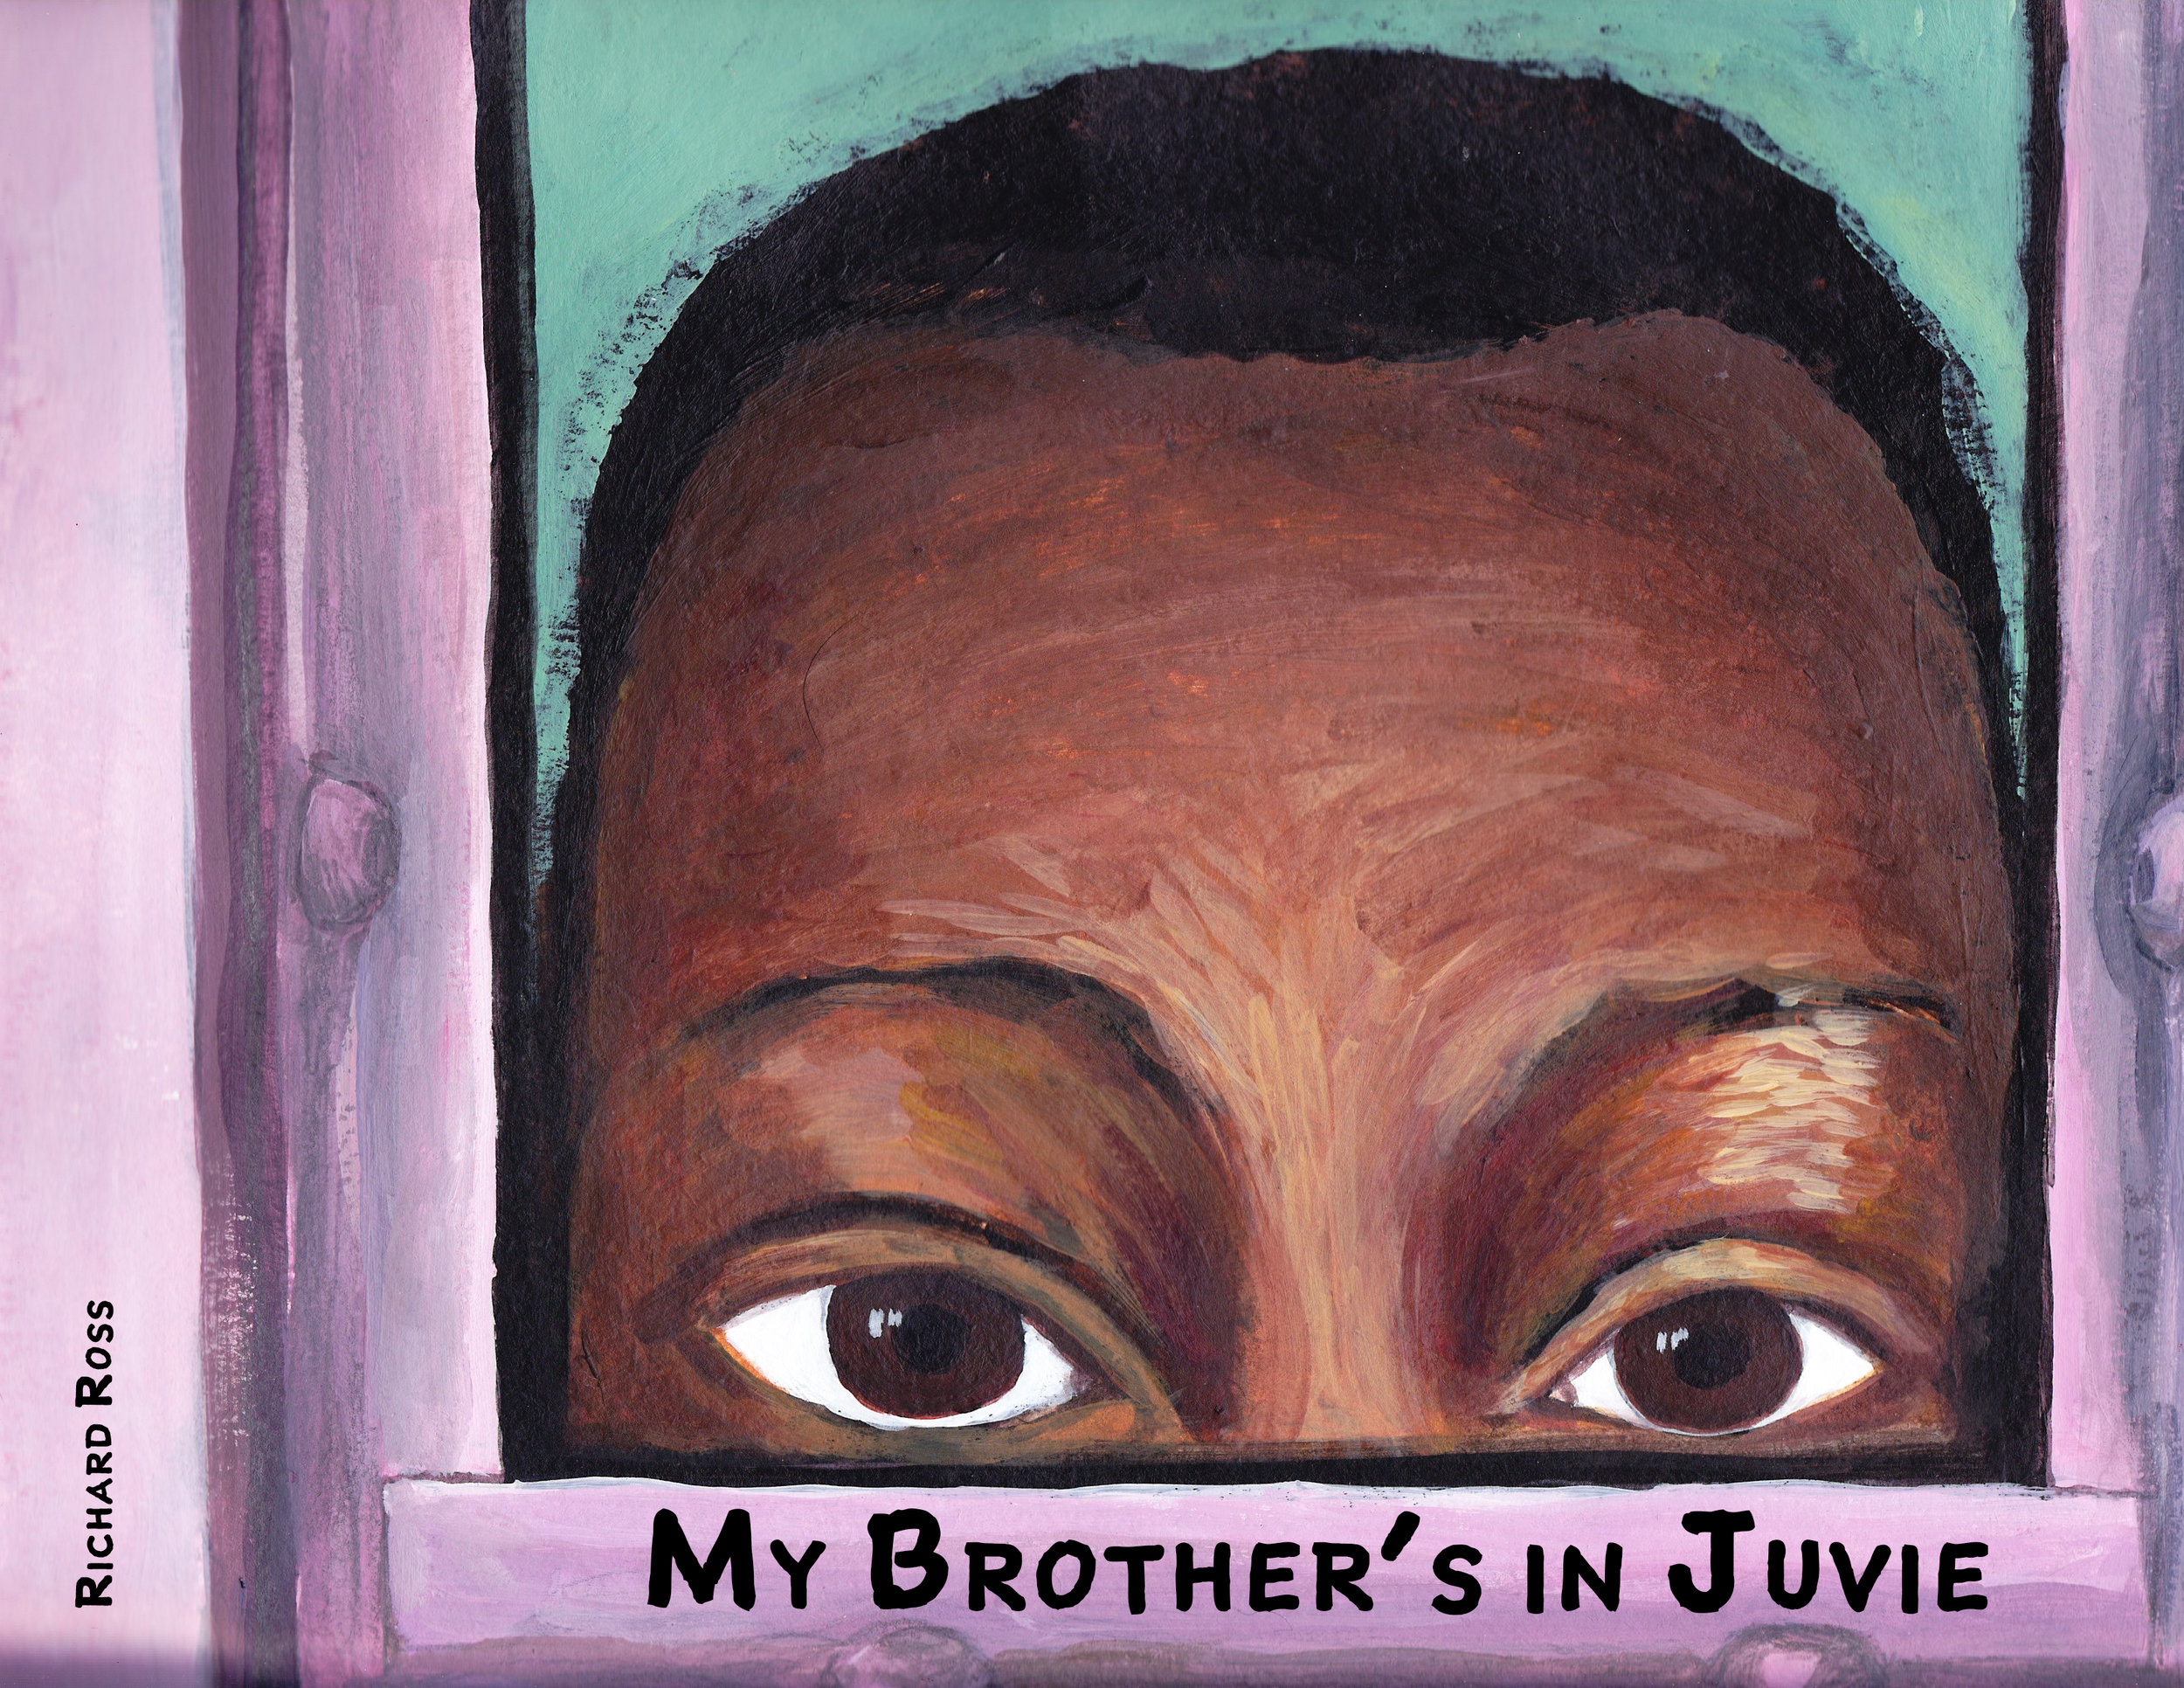 My Brother's in Juvie (Cover).jpg